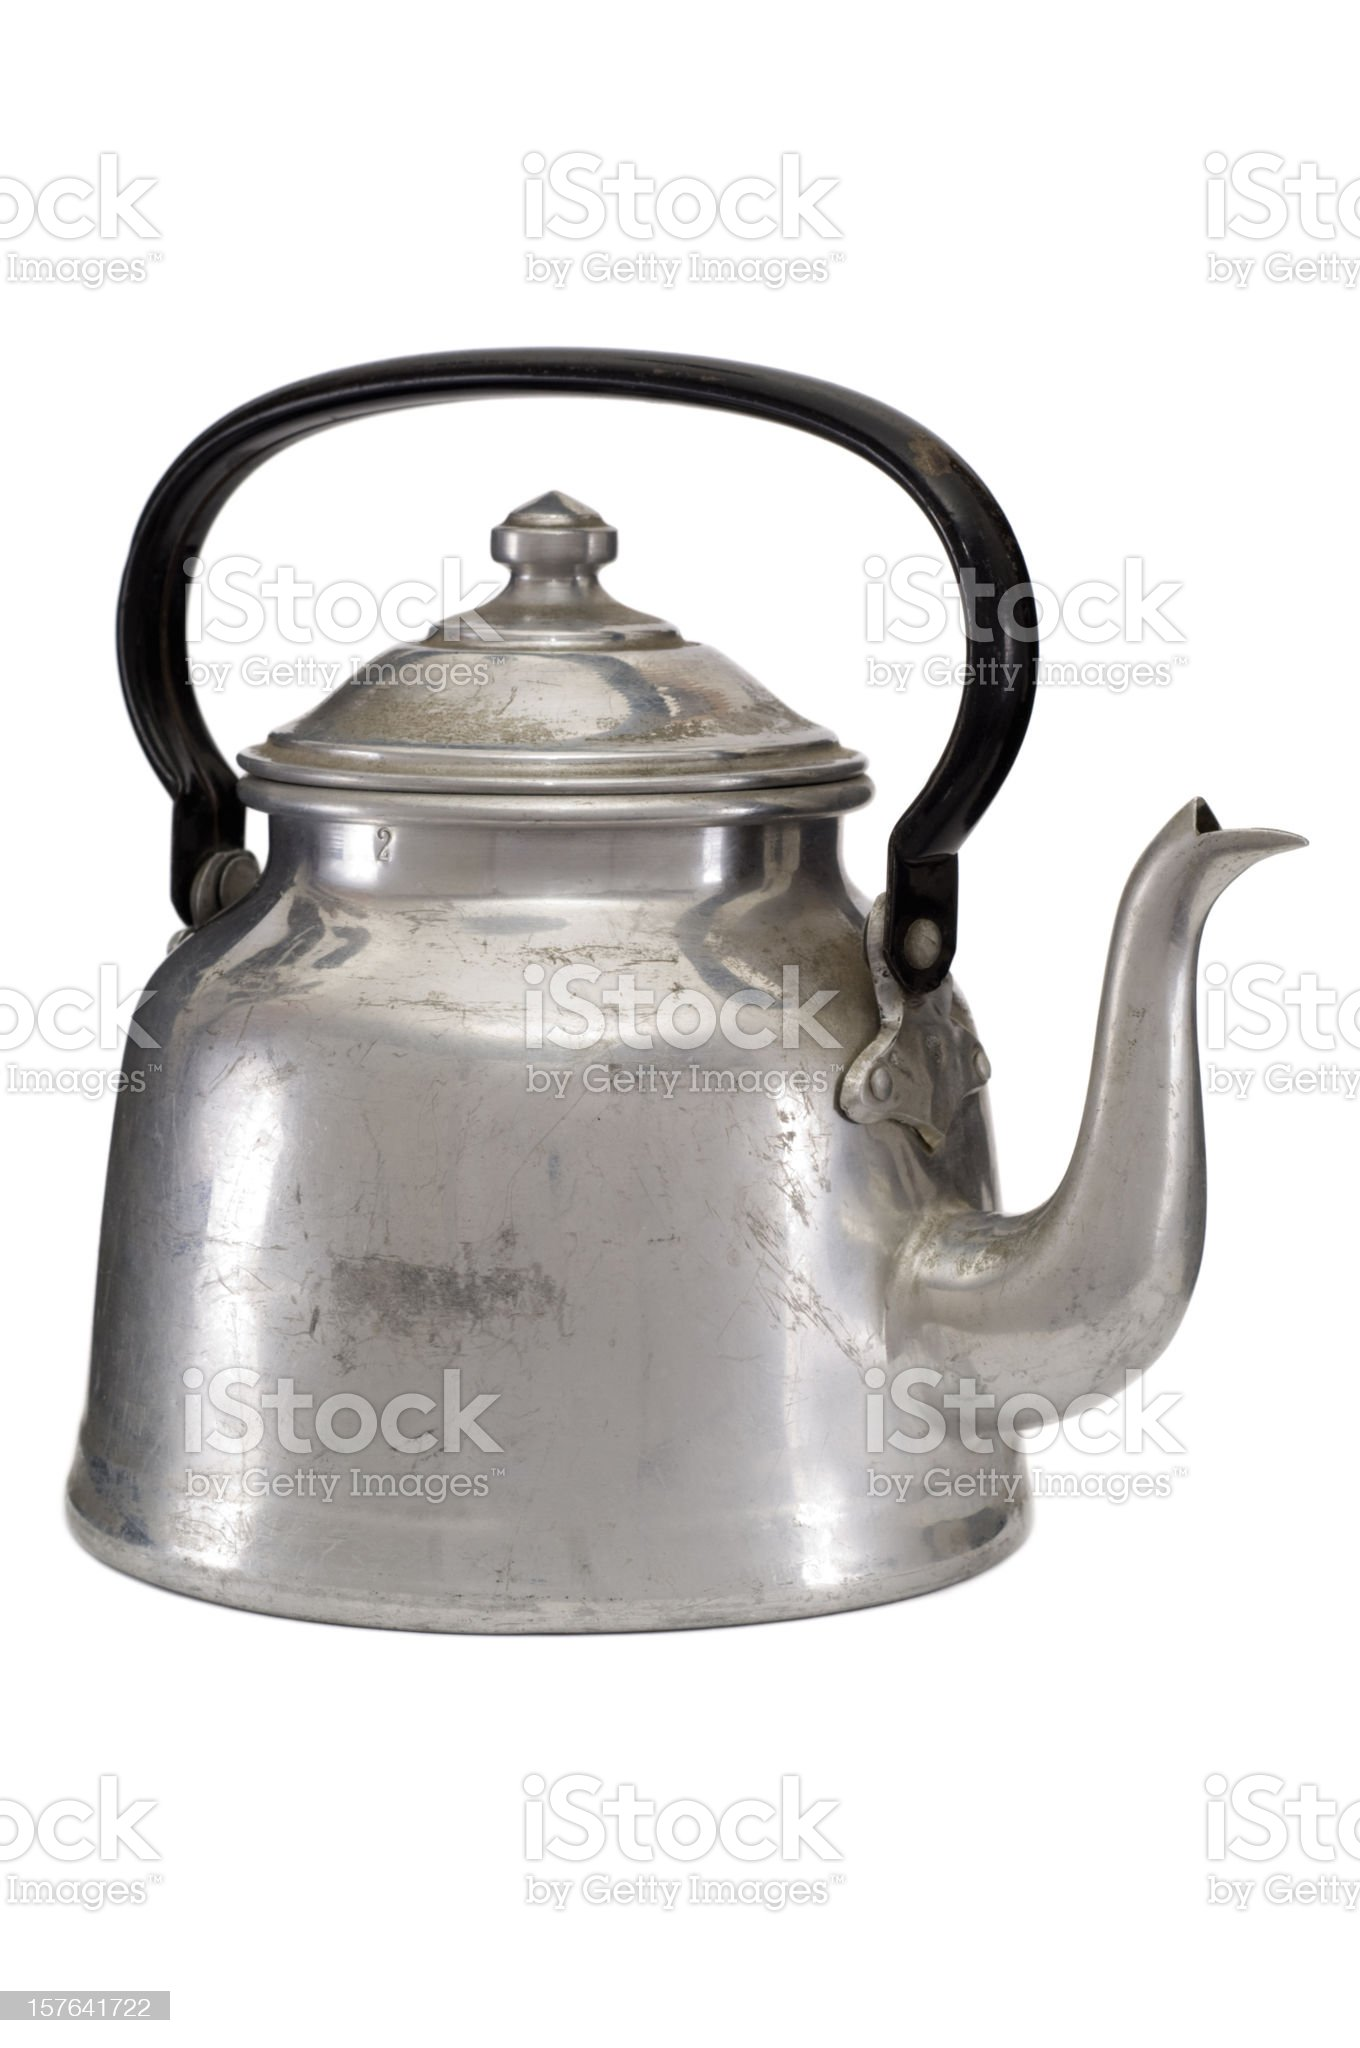 Old water kettle on white background royalty-free stock photo